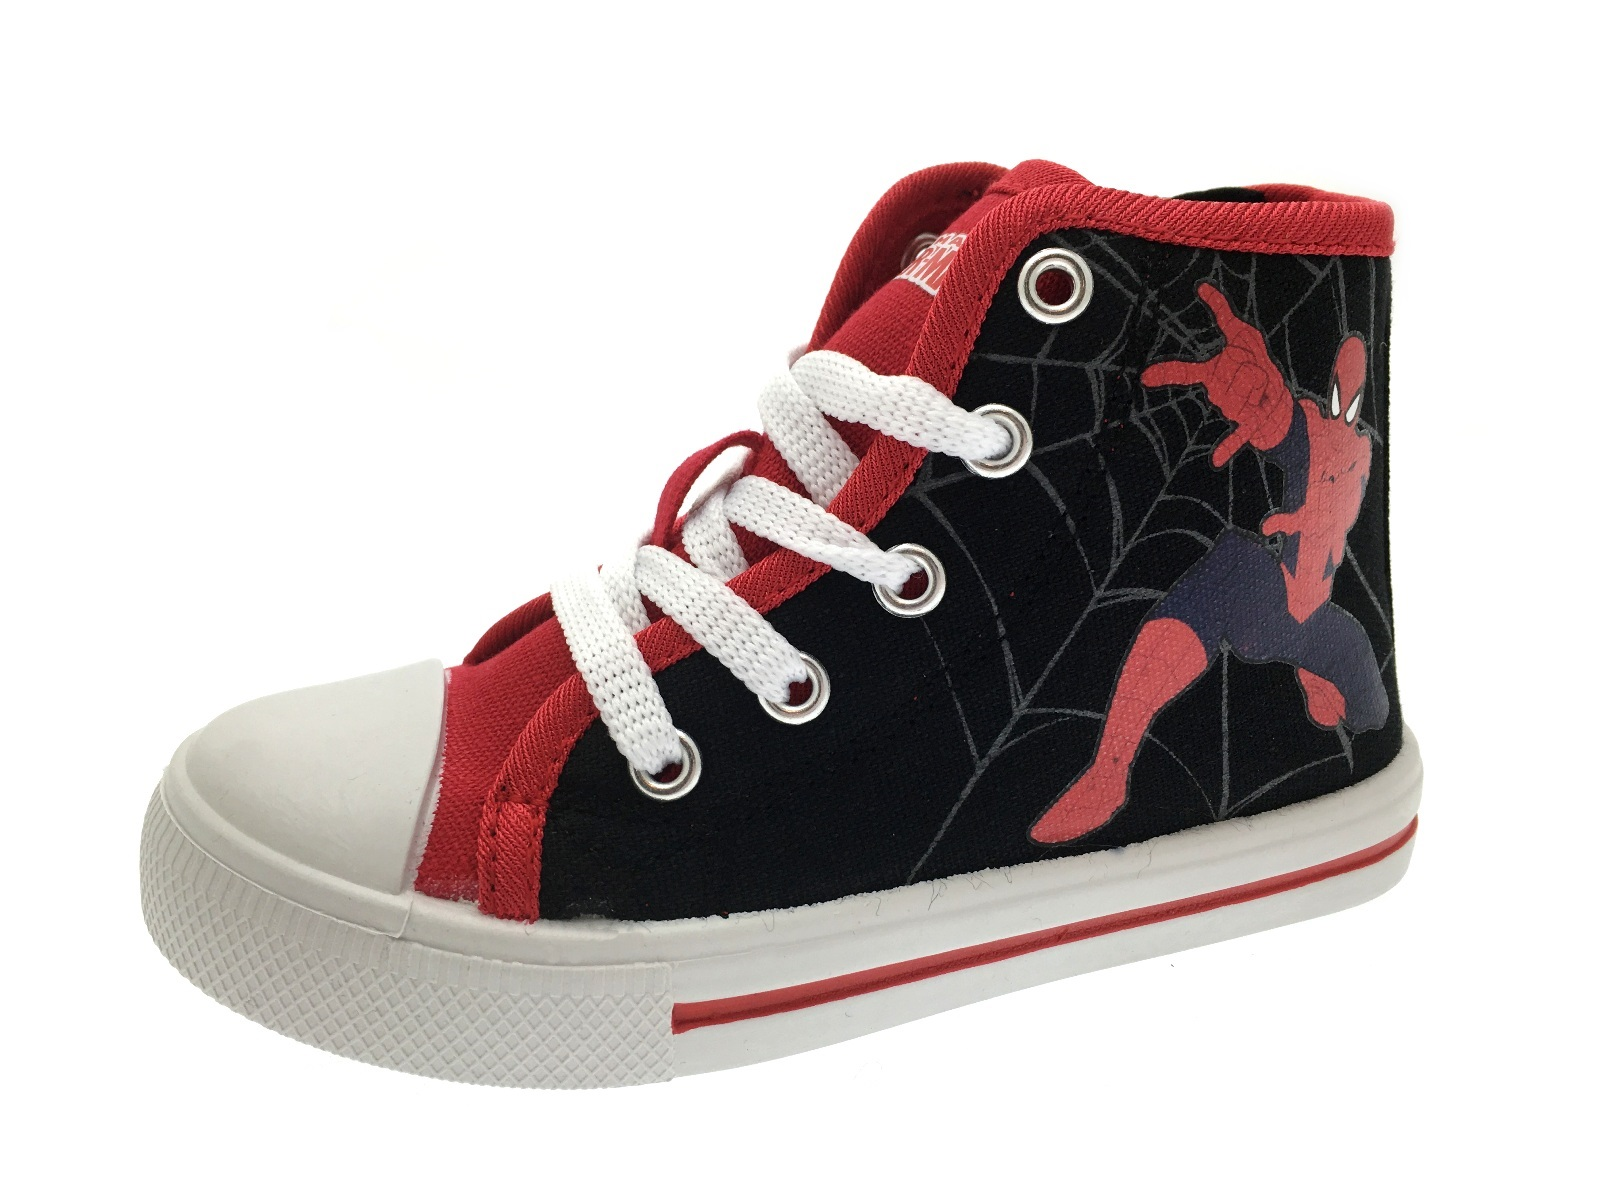 Free shipping BOTH ways on spider man tennis shoes for kids, from our vast selection of styles. Fast delivery, and 24/7/ real-person service with a smile. Click or call